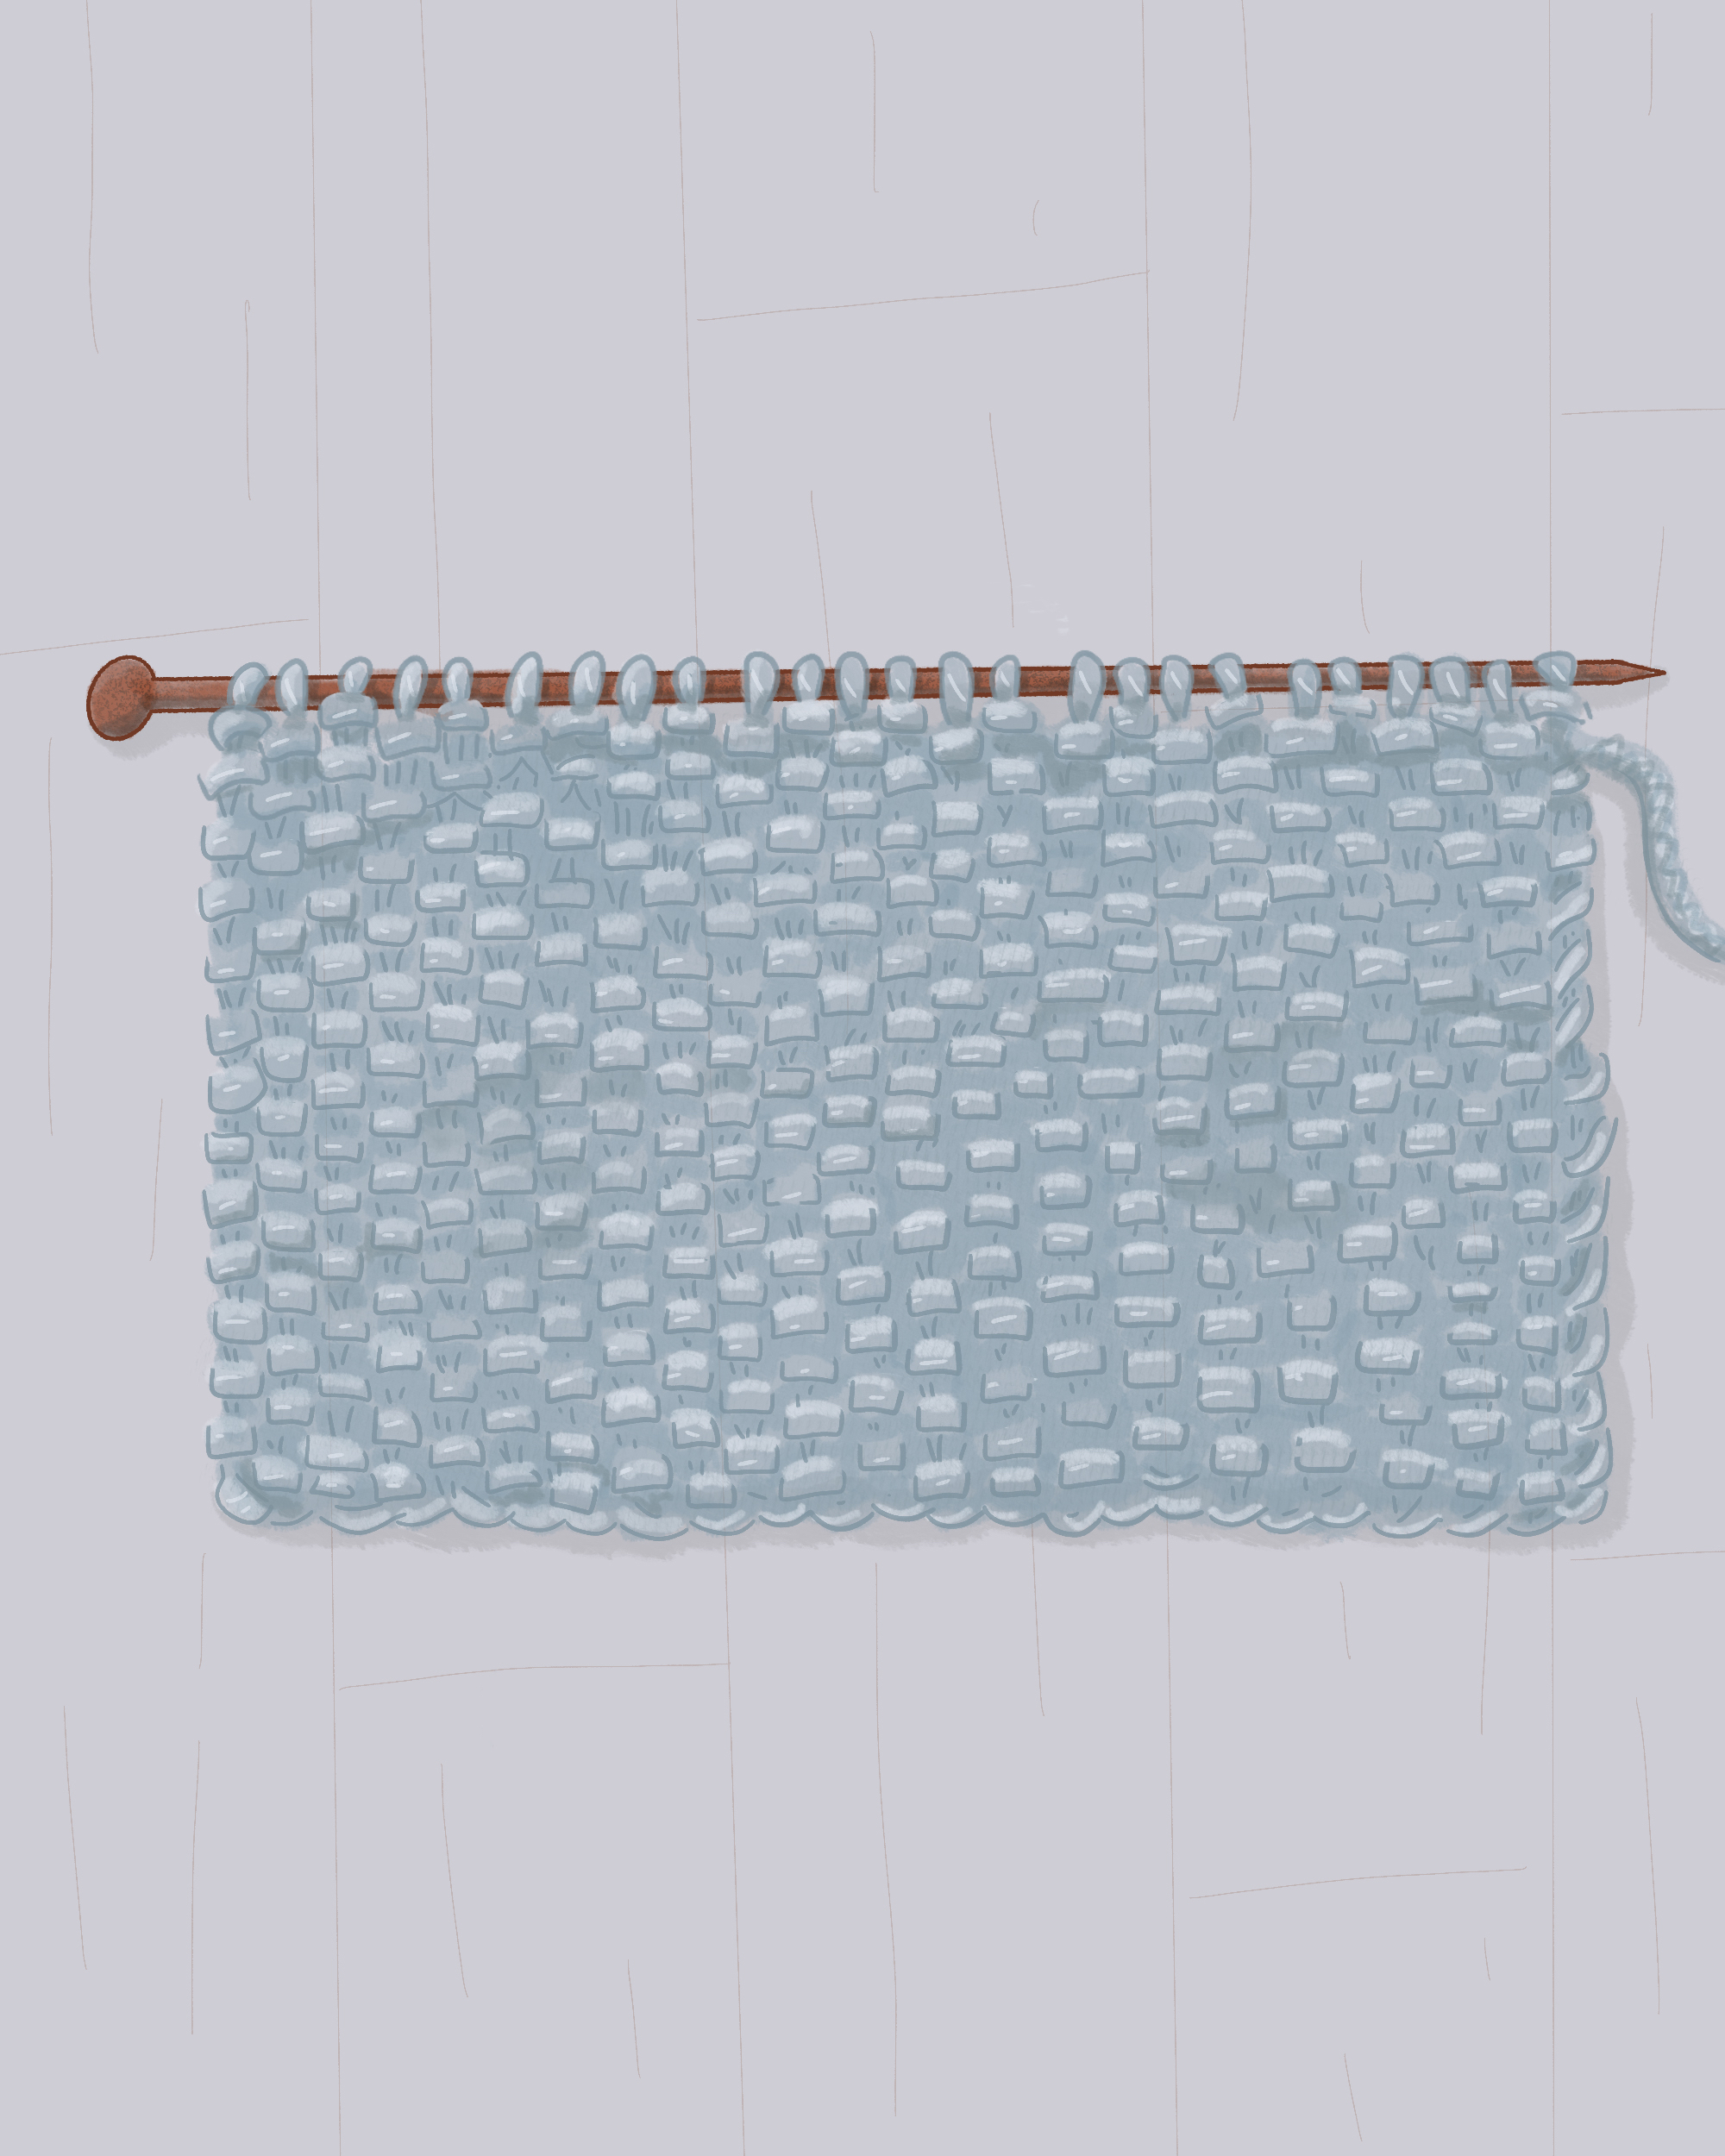 seed stitch in knitting